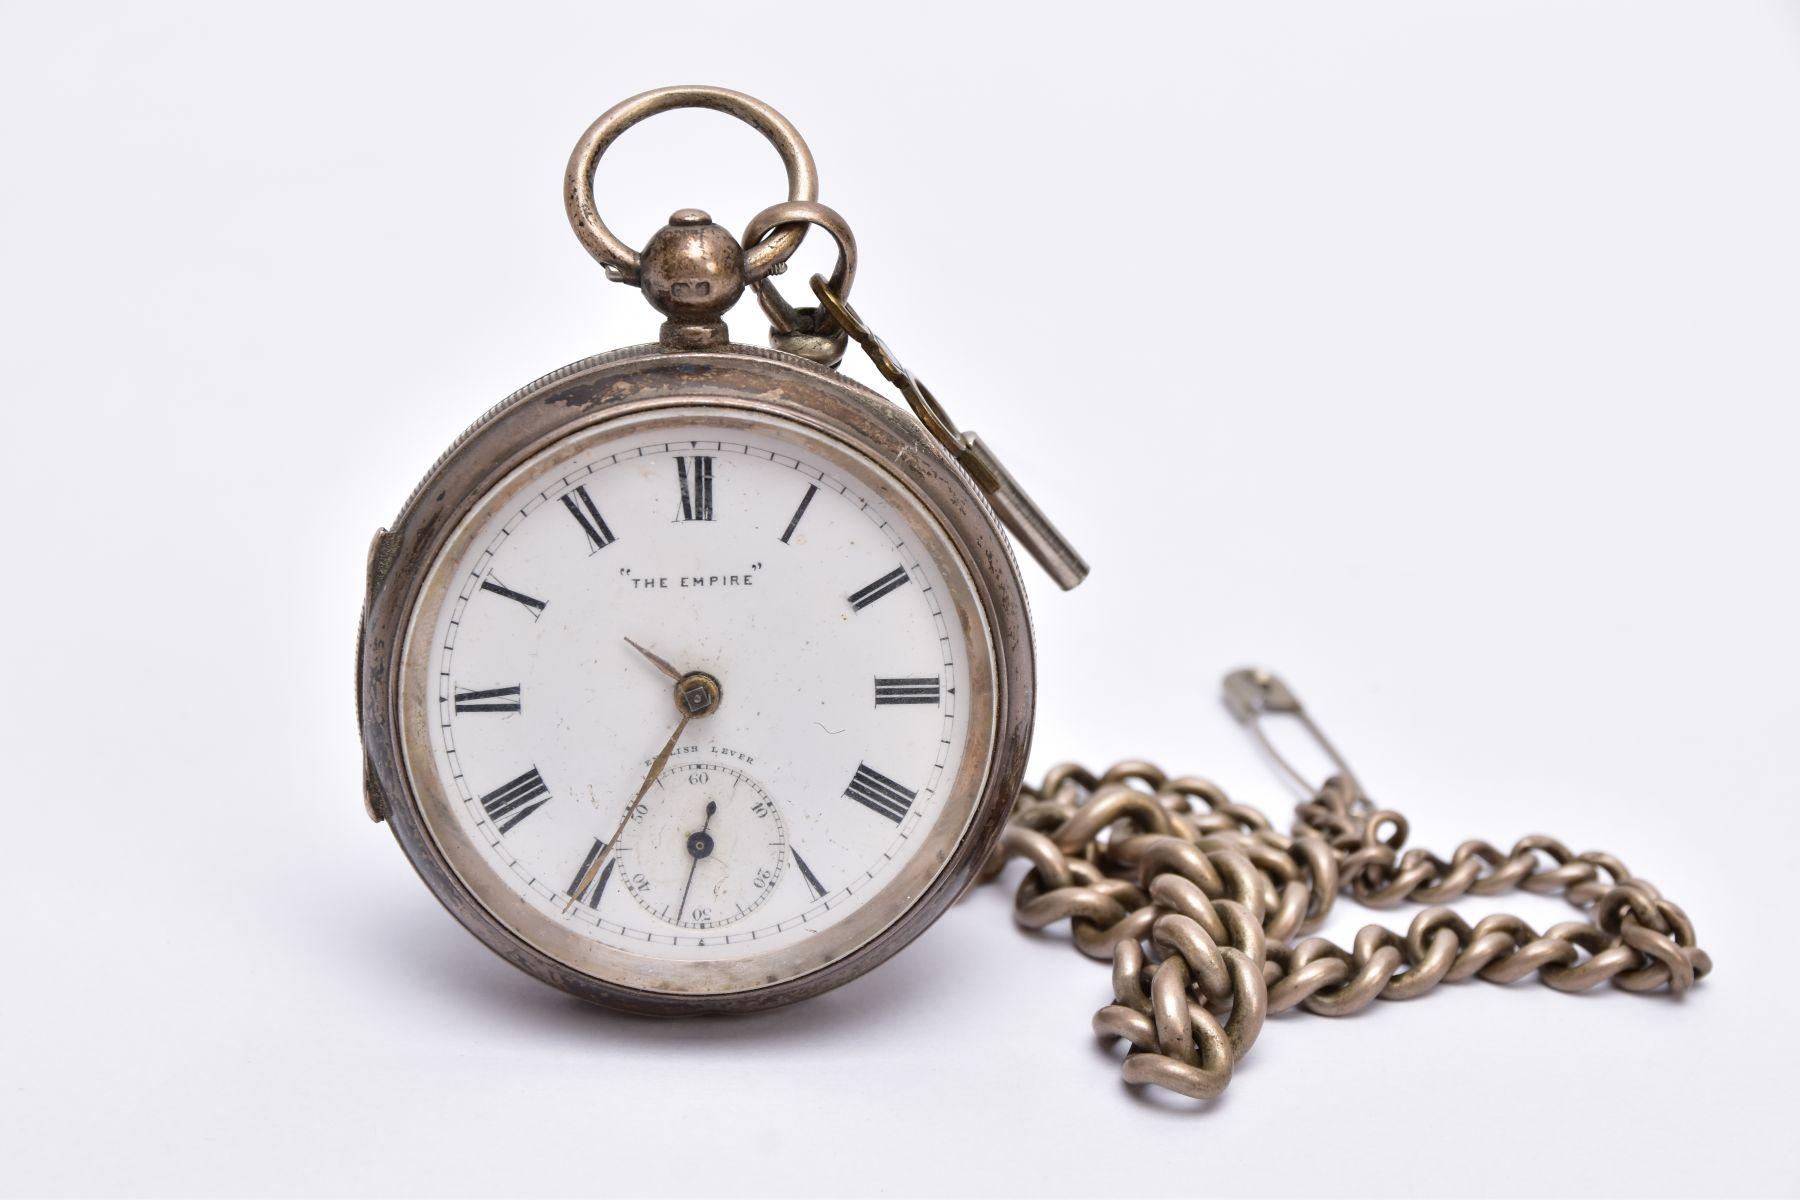 A SILVER OPEN FACED POCKET WITH ALBERT CHAIN, white dial signed 'The Empire', Roman numerals,